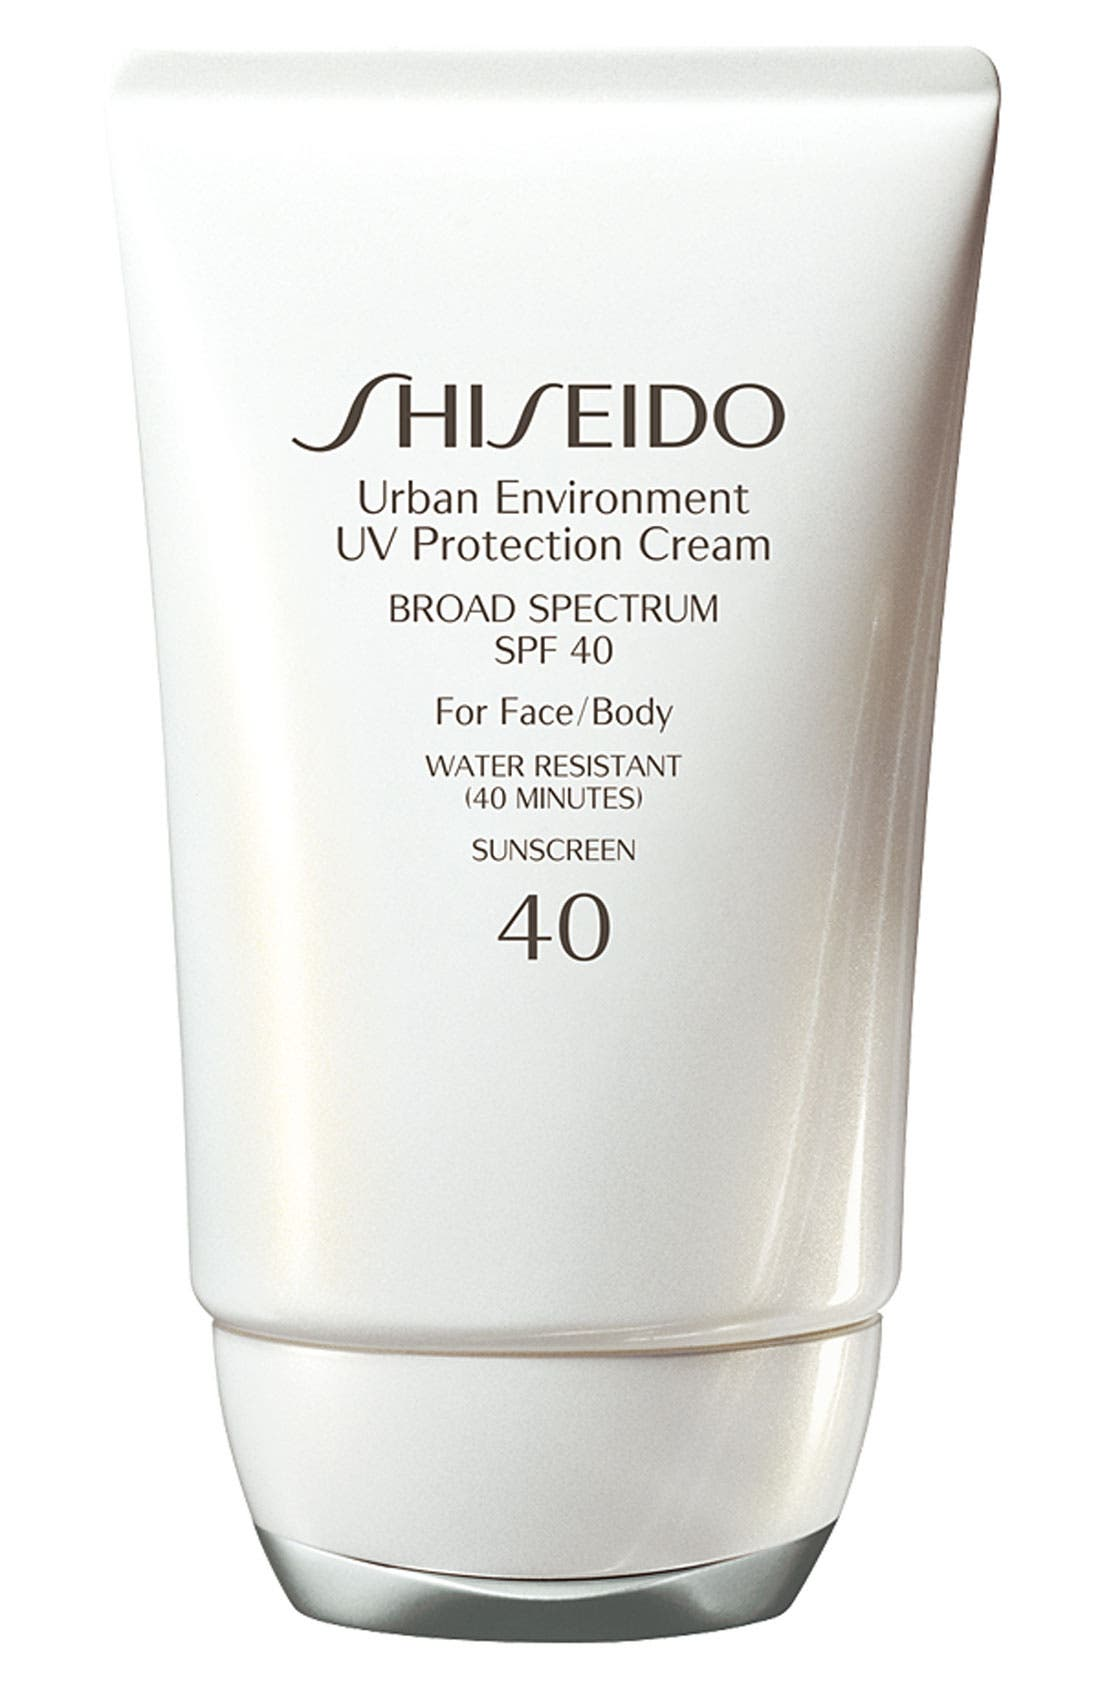 Urban Environment UV Protection Cream SPF 40,                             Main thumbnail 1, color,                             000